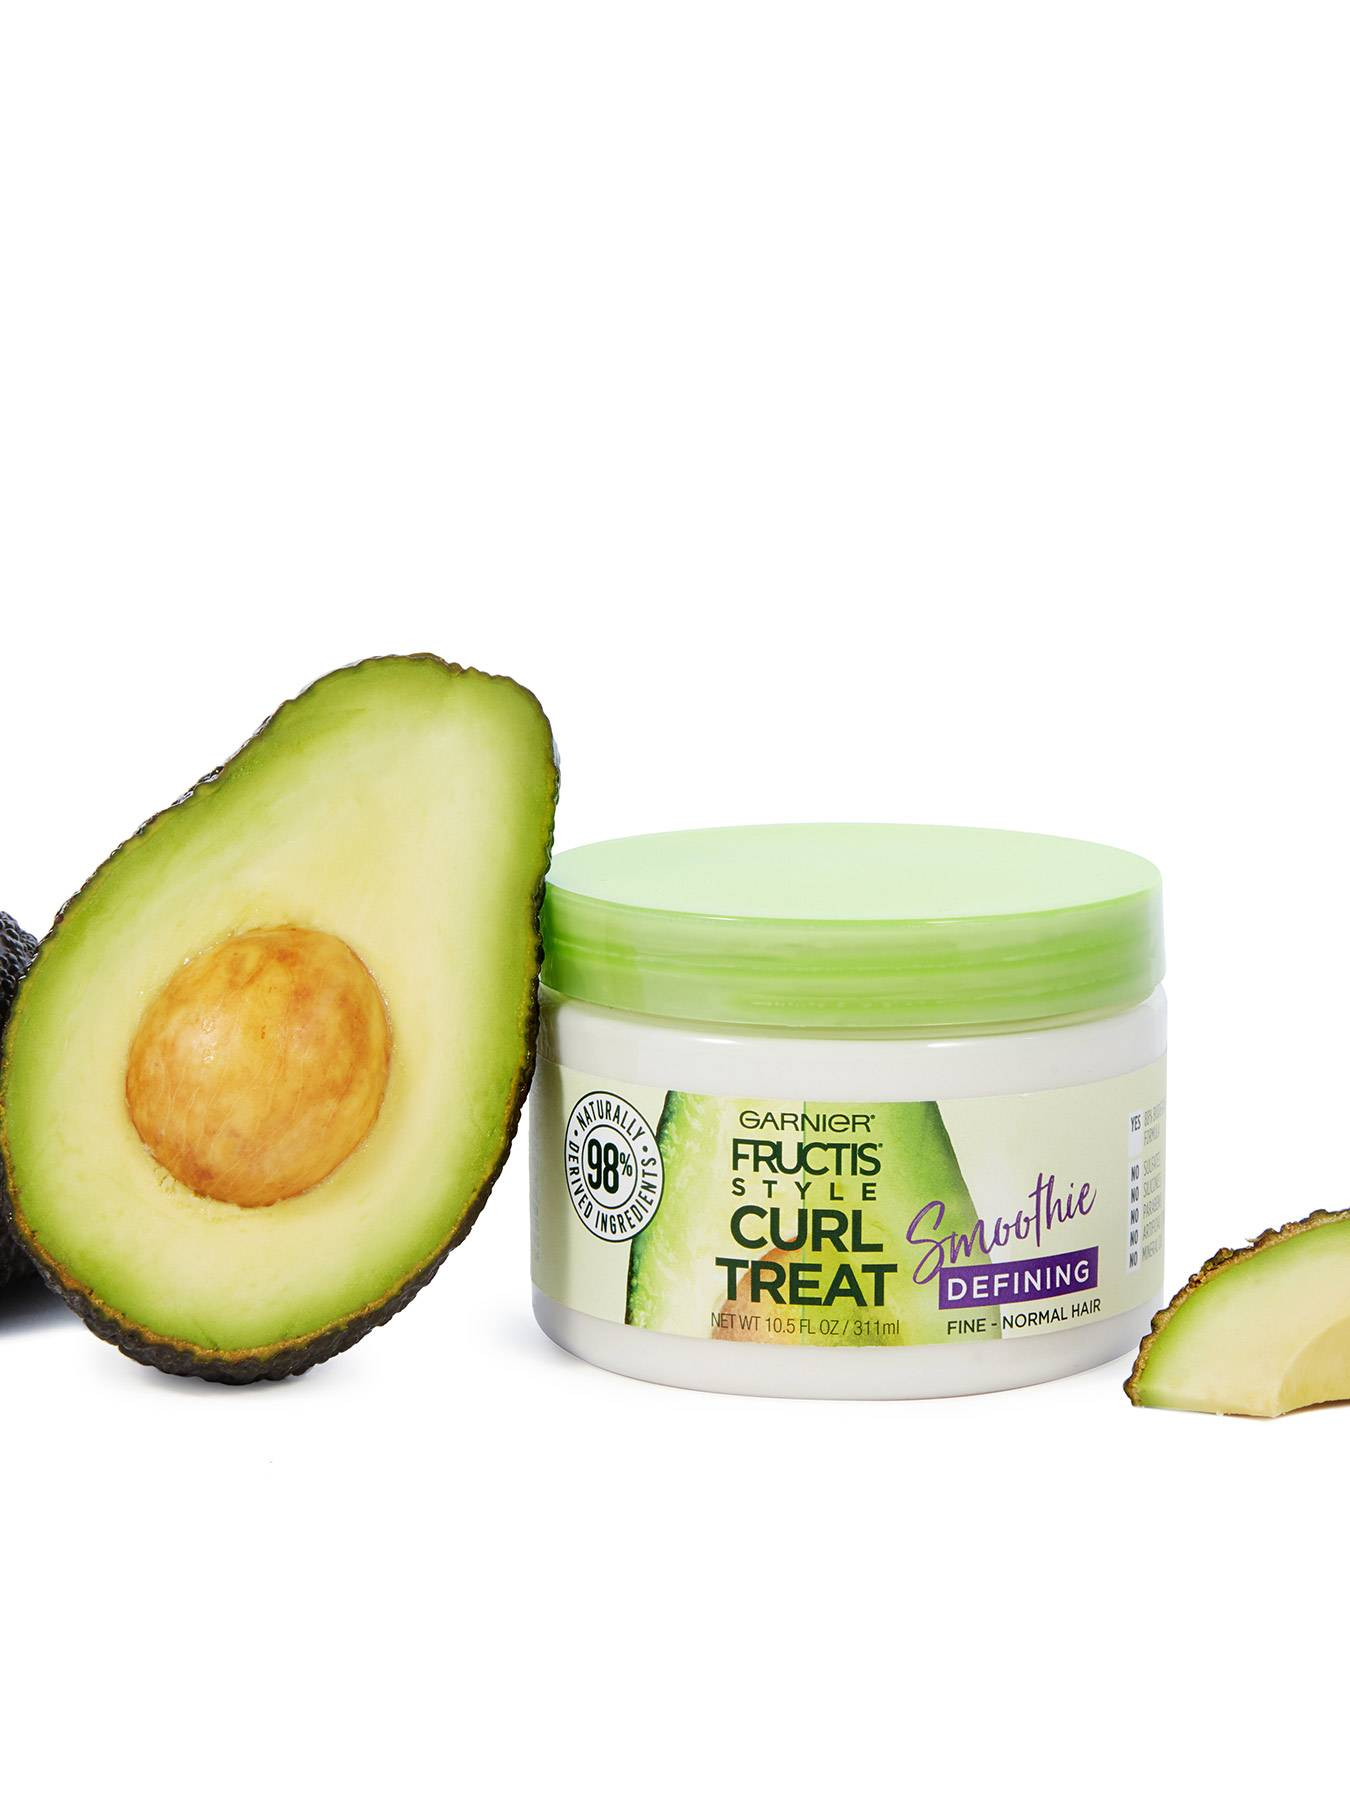 Curl Treat Smoothie Defining Leave-in Styler for Soft Curls next to avocado halves.